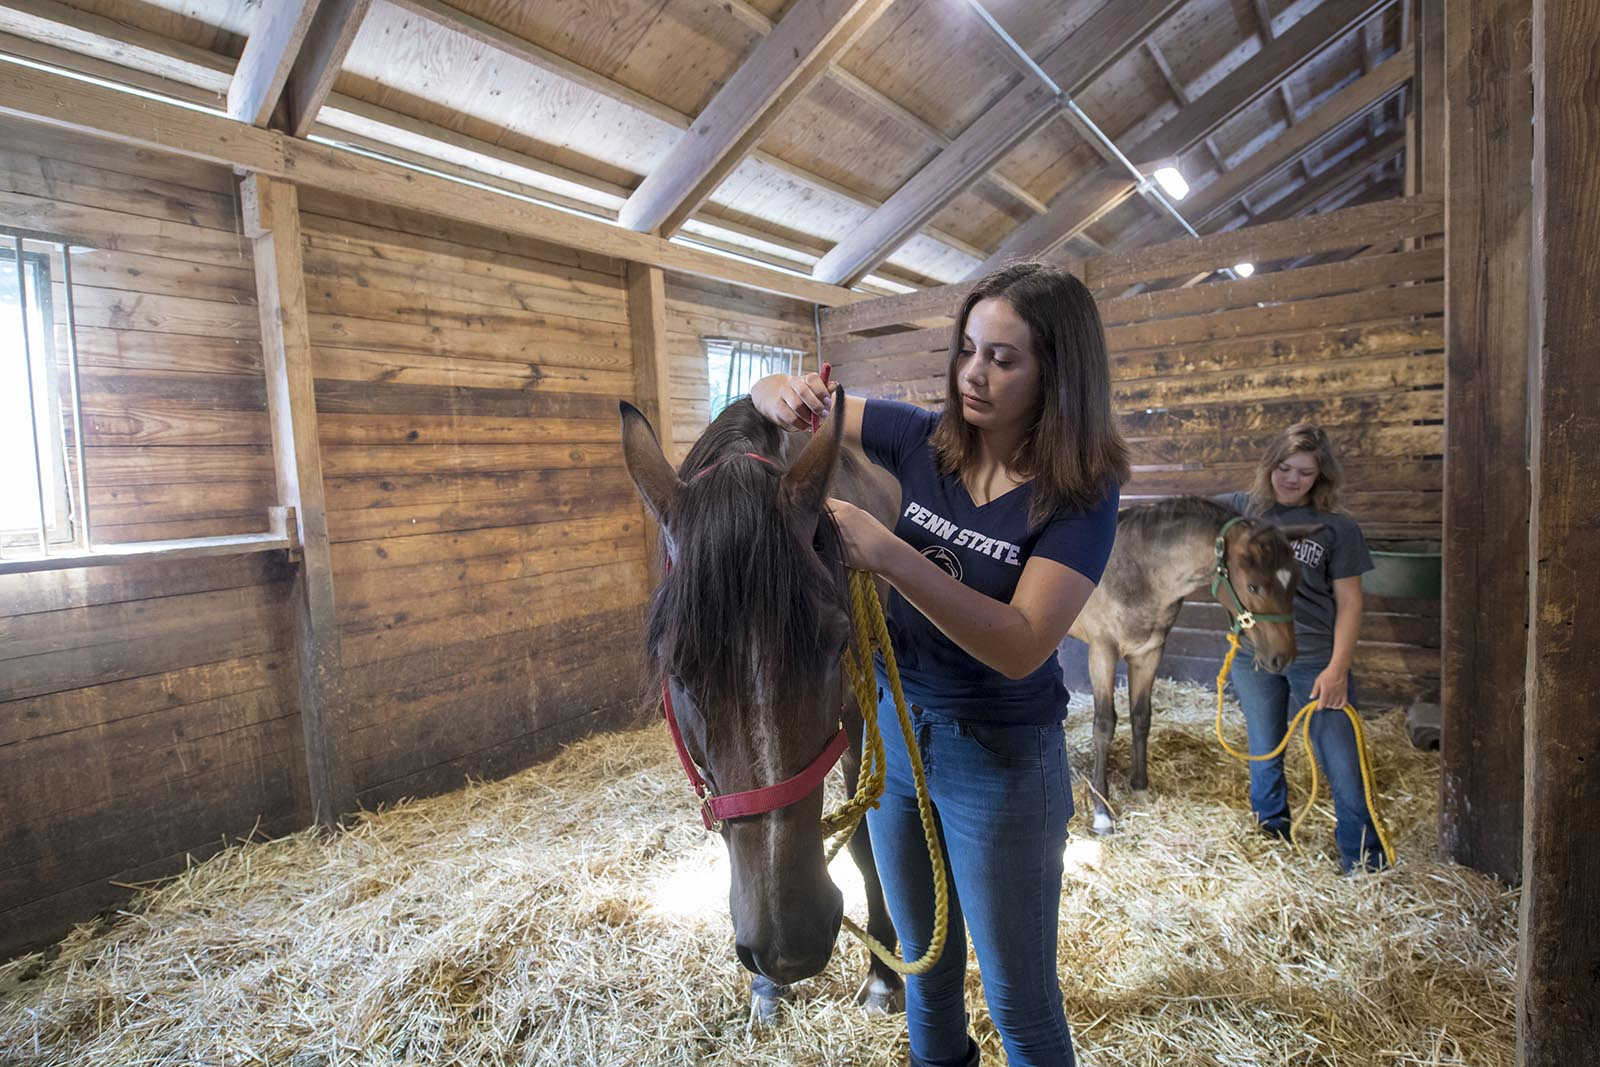 A Penn State Equine Science student adjusting the bridle of a horse.